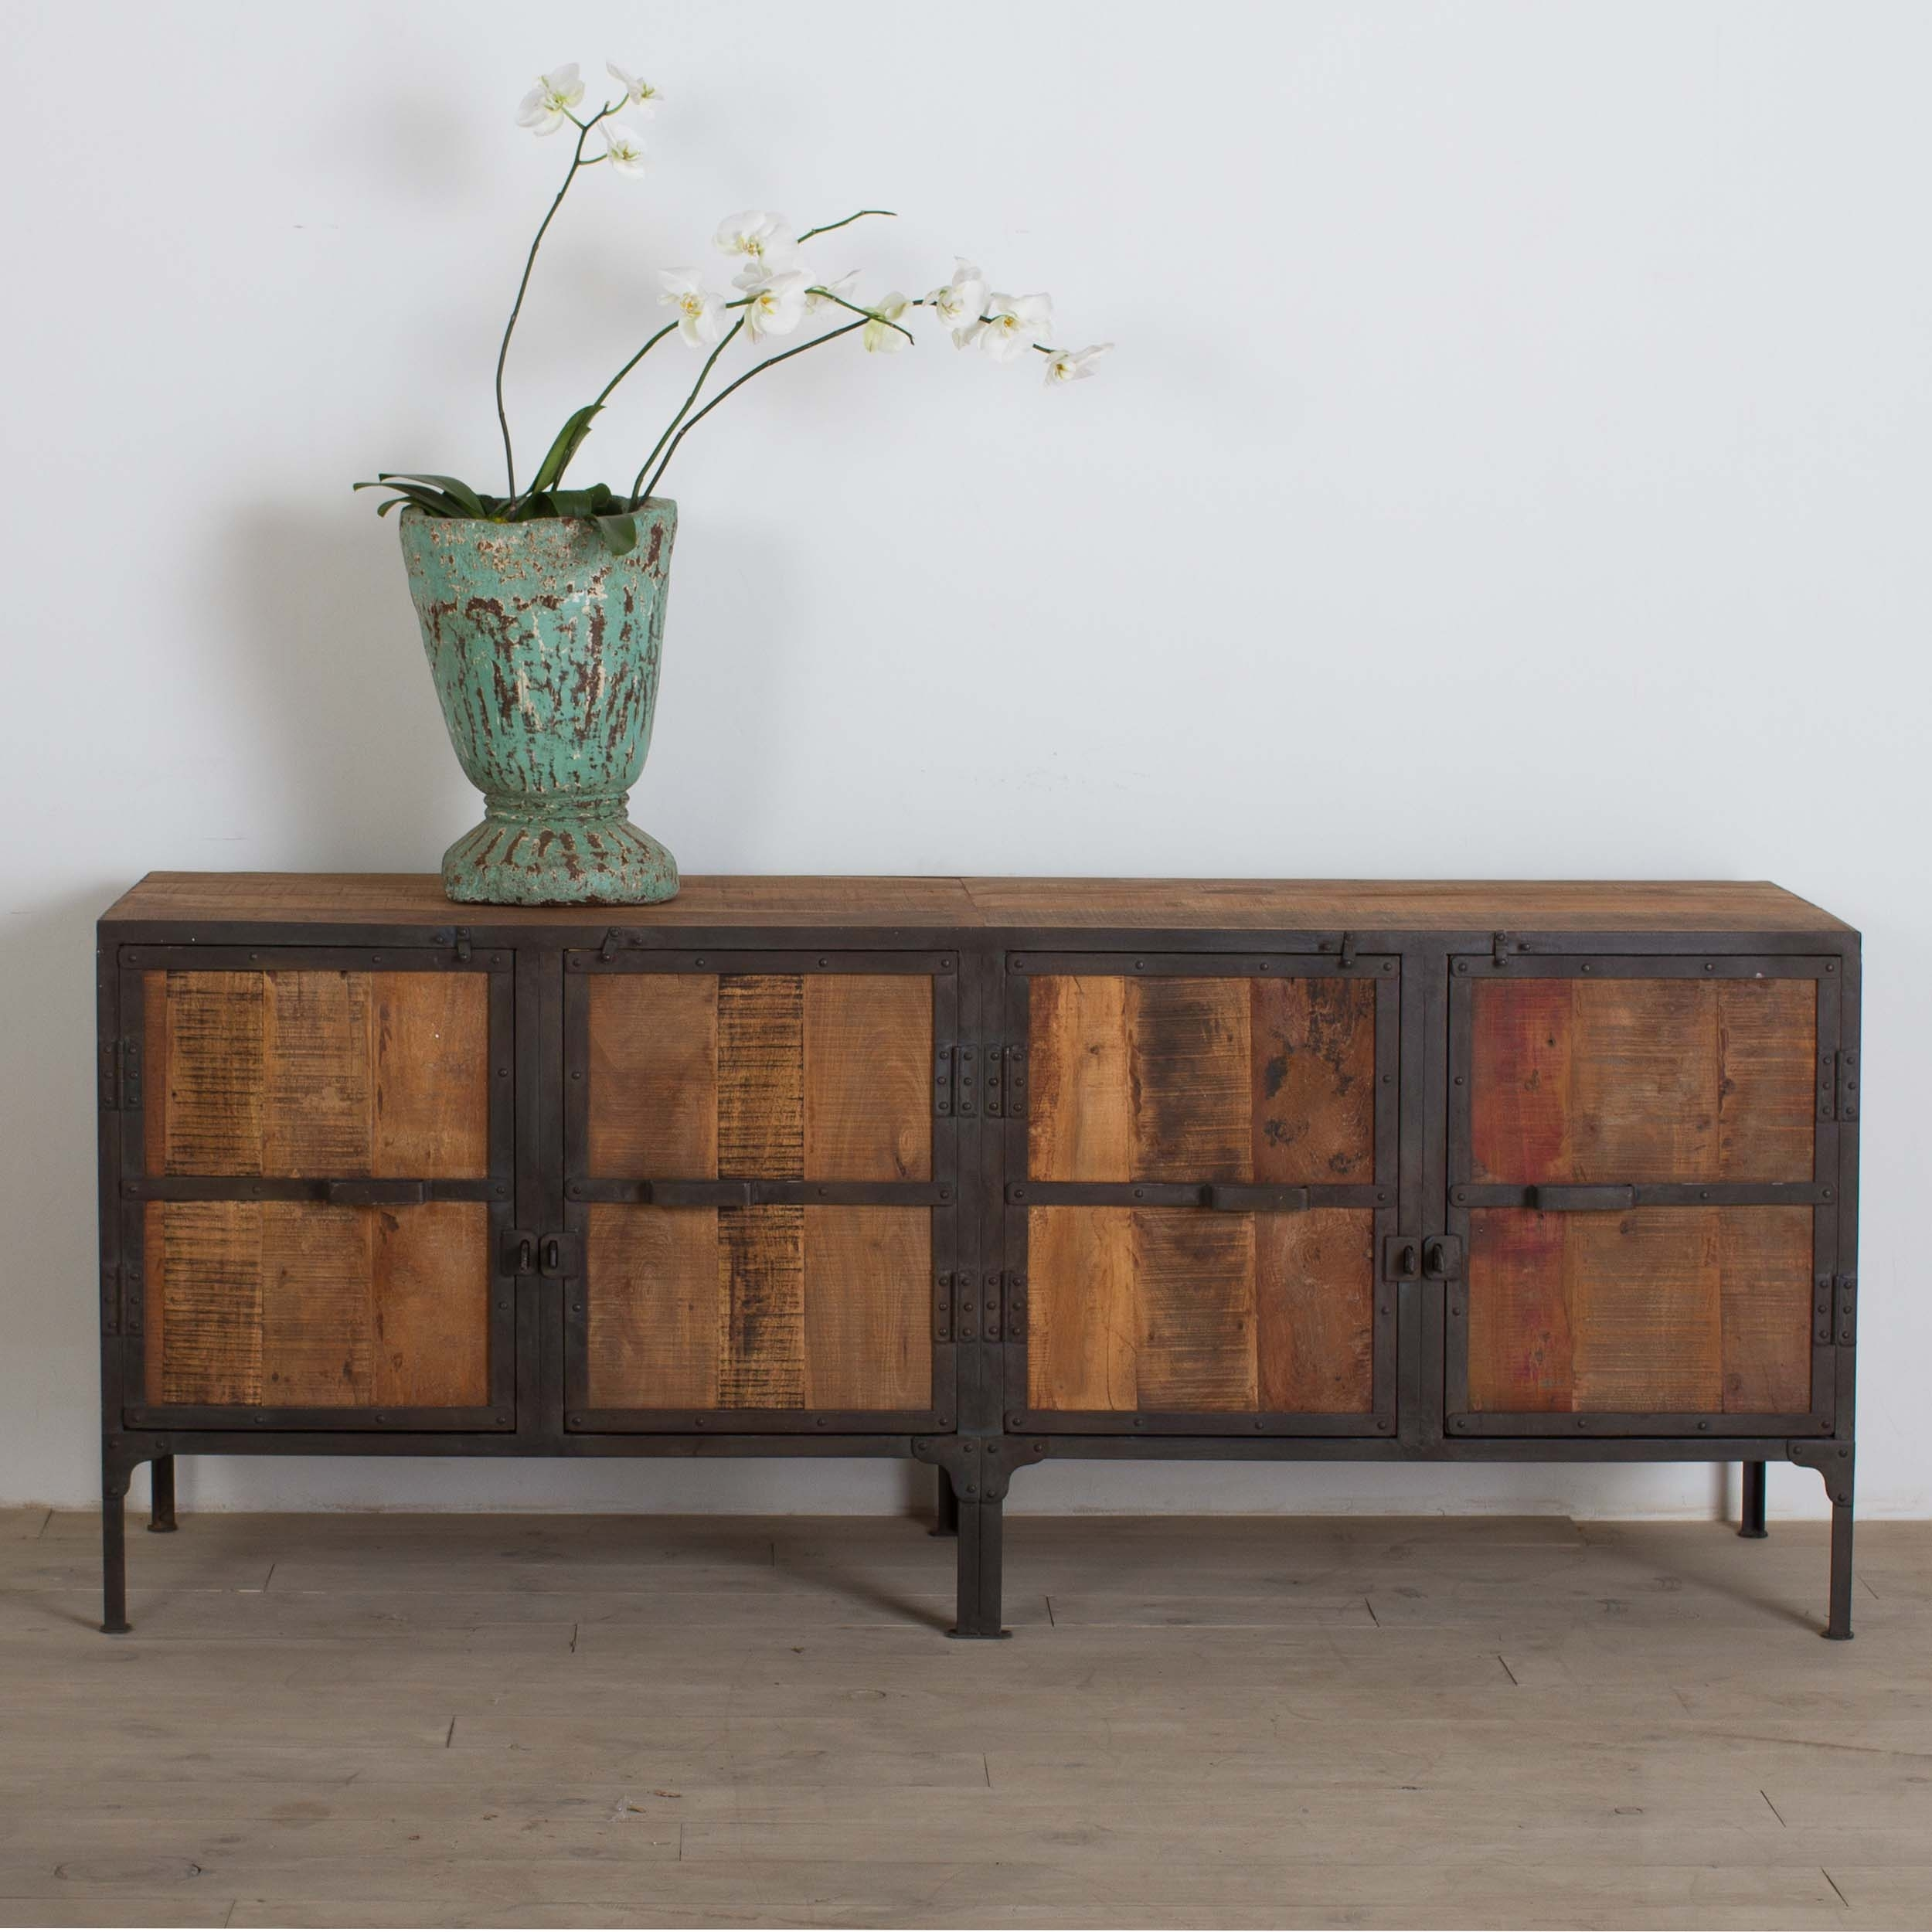 Shop Handmade Cg Sparks Handmade Hyderabad Reclaimed Wood And Metal for Reclaimed Sideboards With Metal Panel (Image 20 of 30)